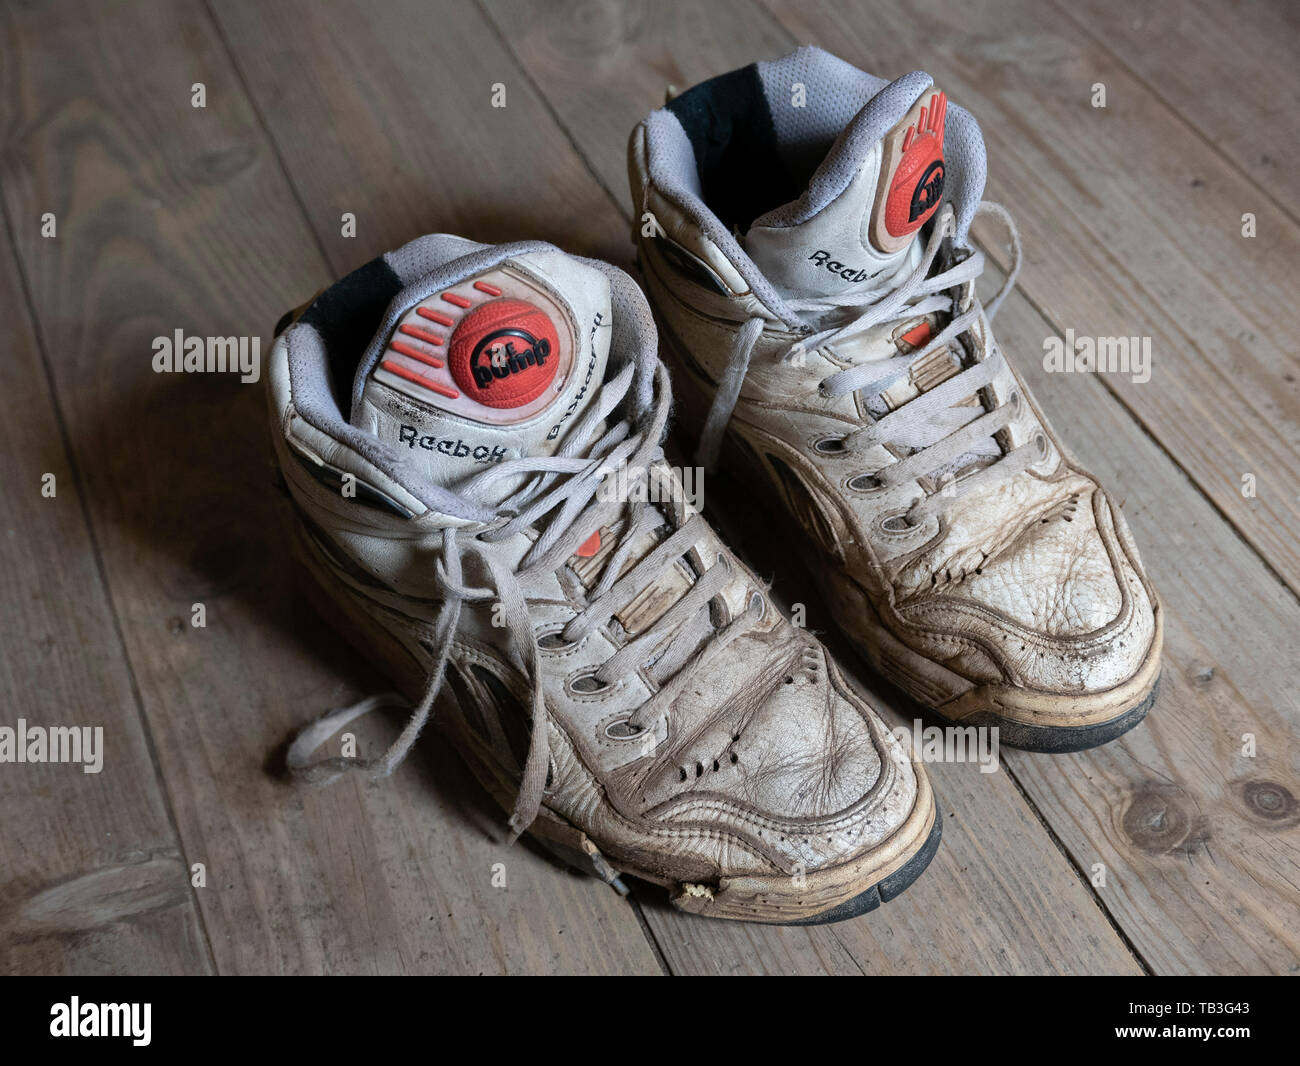 8820a5ee Pair of old worn 1990s Reebok Pump white basketball sneakers - Stock Image